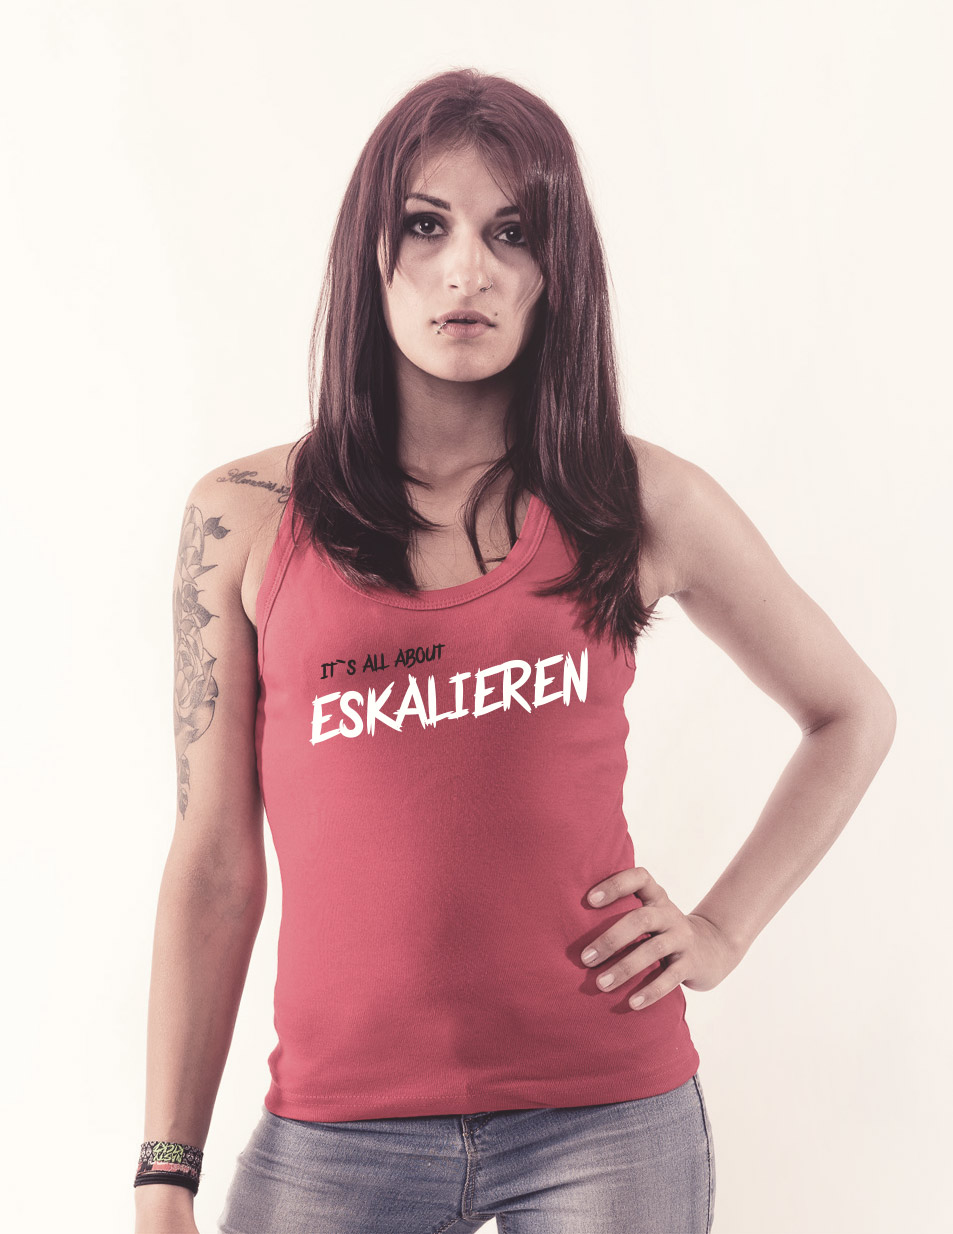 Its all about Eskalieren - Girly Tank Top Pink Edition blau